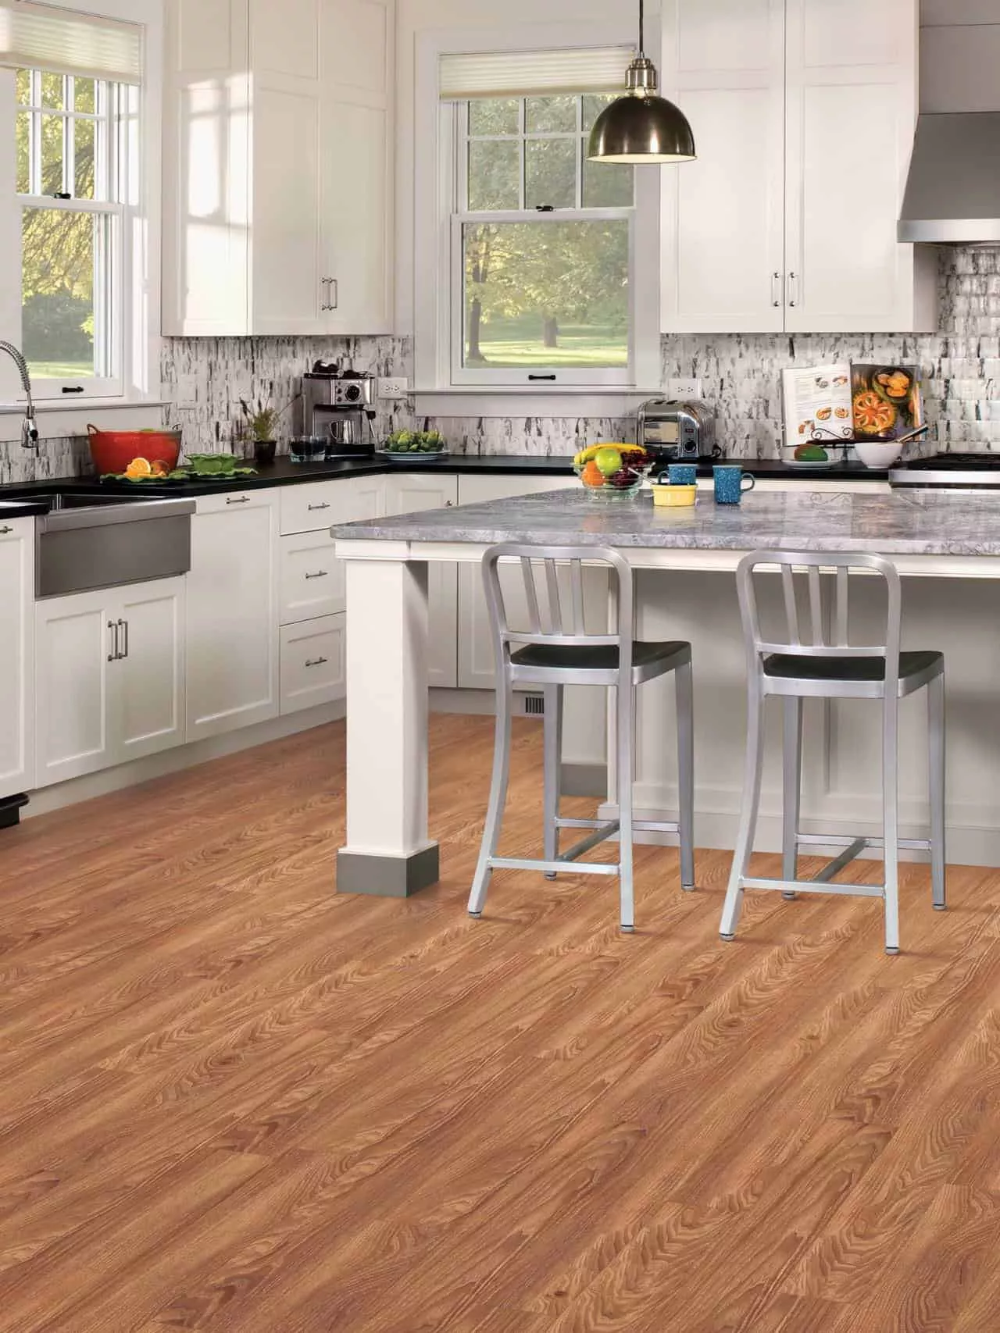 22 Kitchen Flooring Options and Ideas (Pros & Cons) in